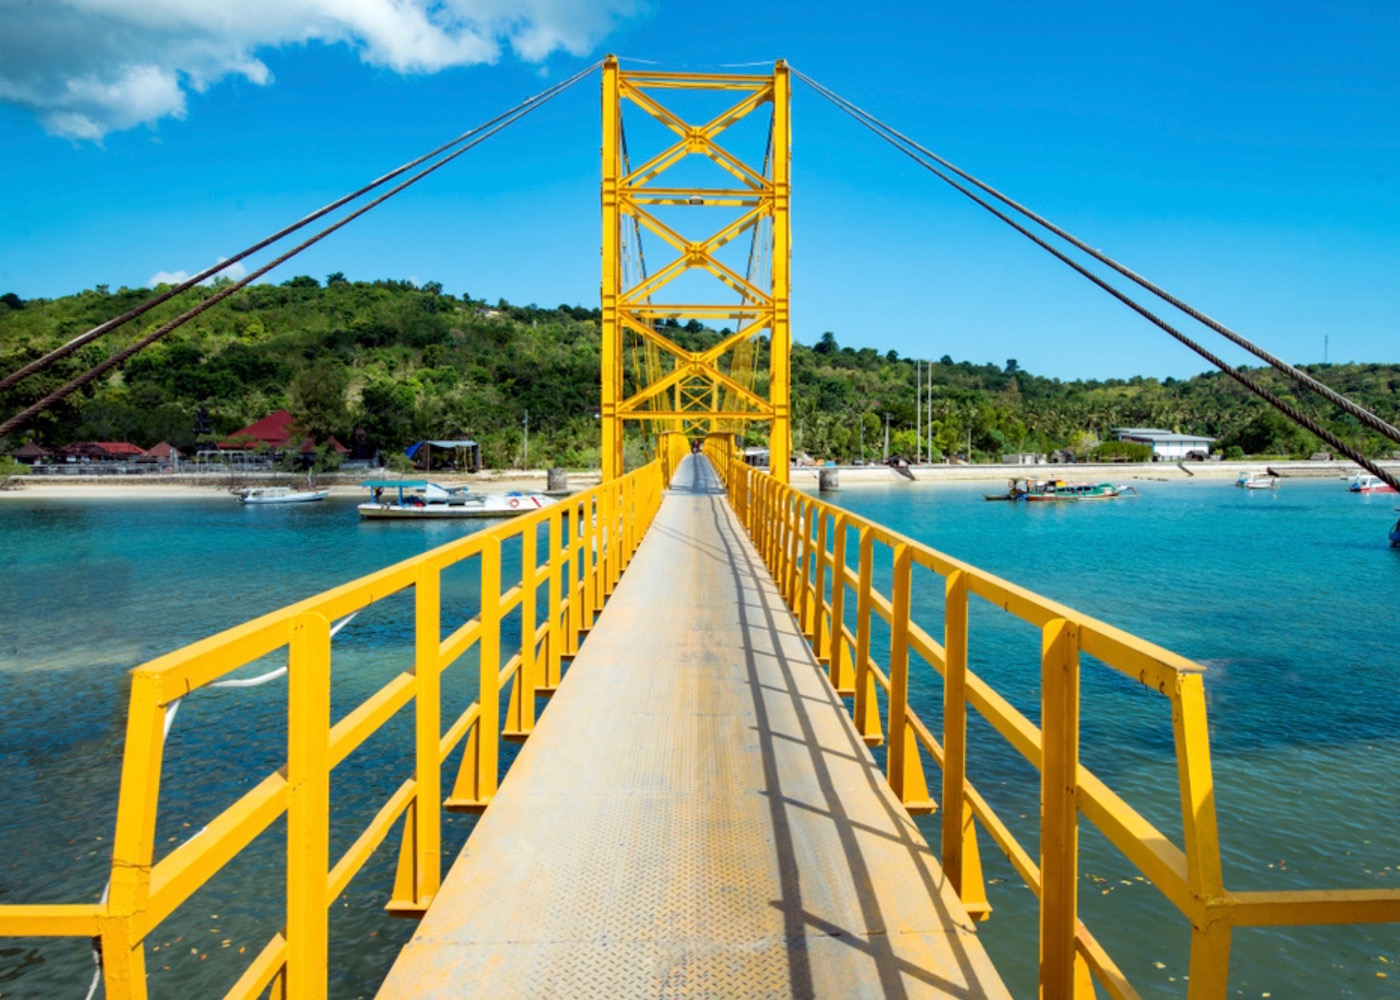 Yellow Suspension Bridge connecting Nusa Lembongan to Nusa Ceningan in Indonesia